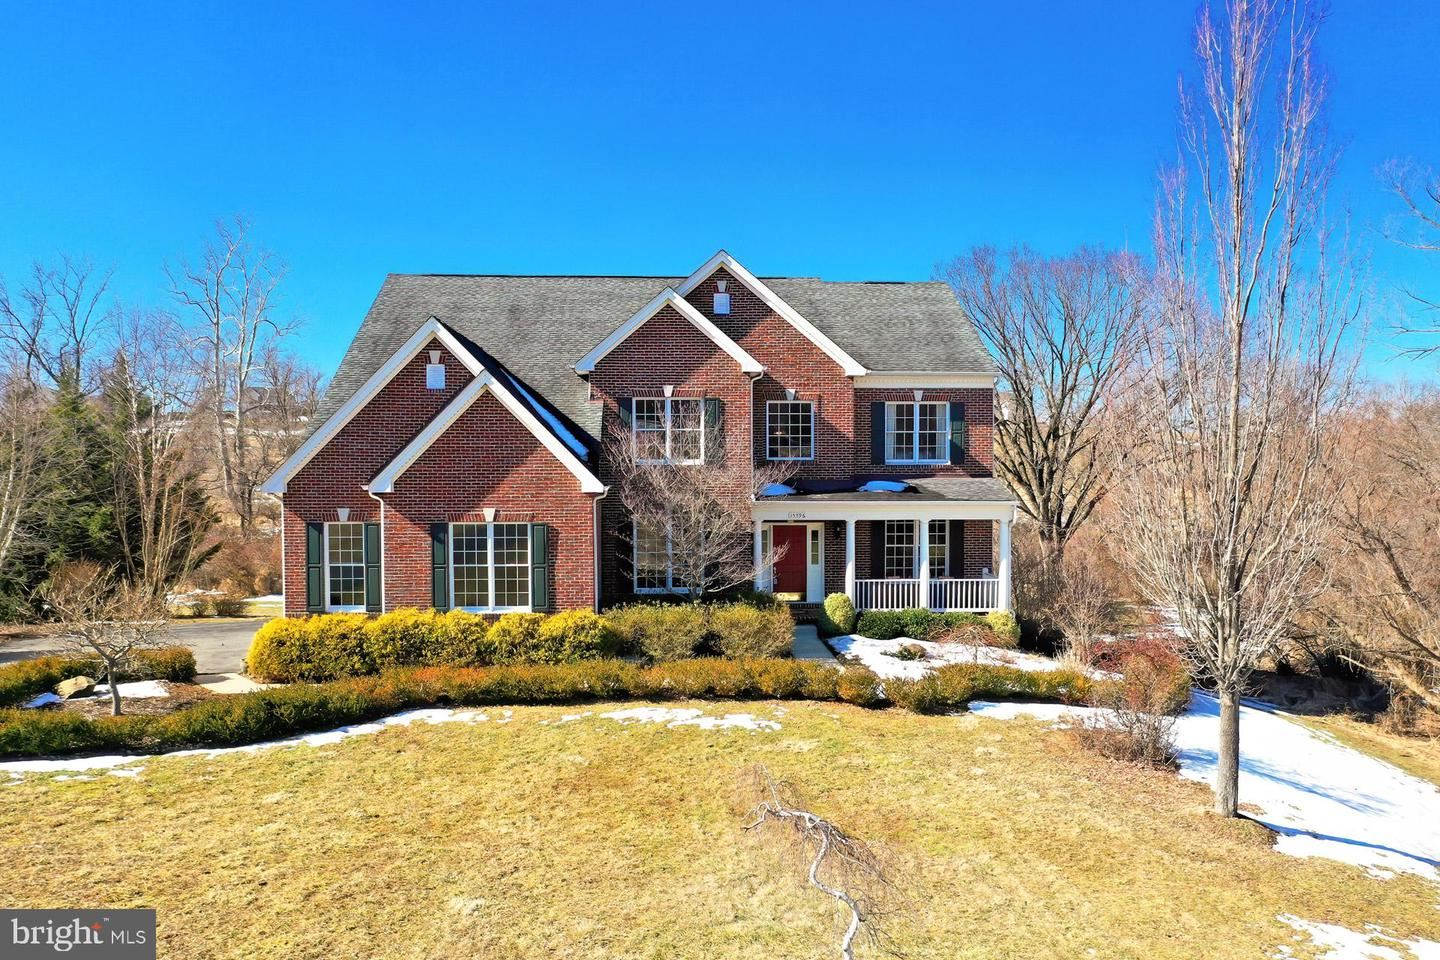 Photo of 15396 BANKFIELD DR, WATERFORD, VA 20197 (MLS # VALO430736)